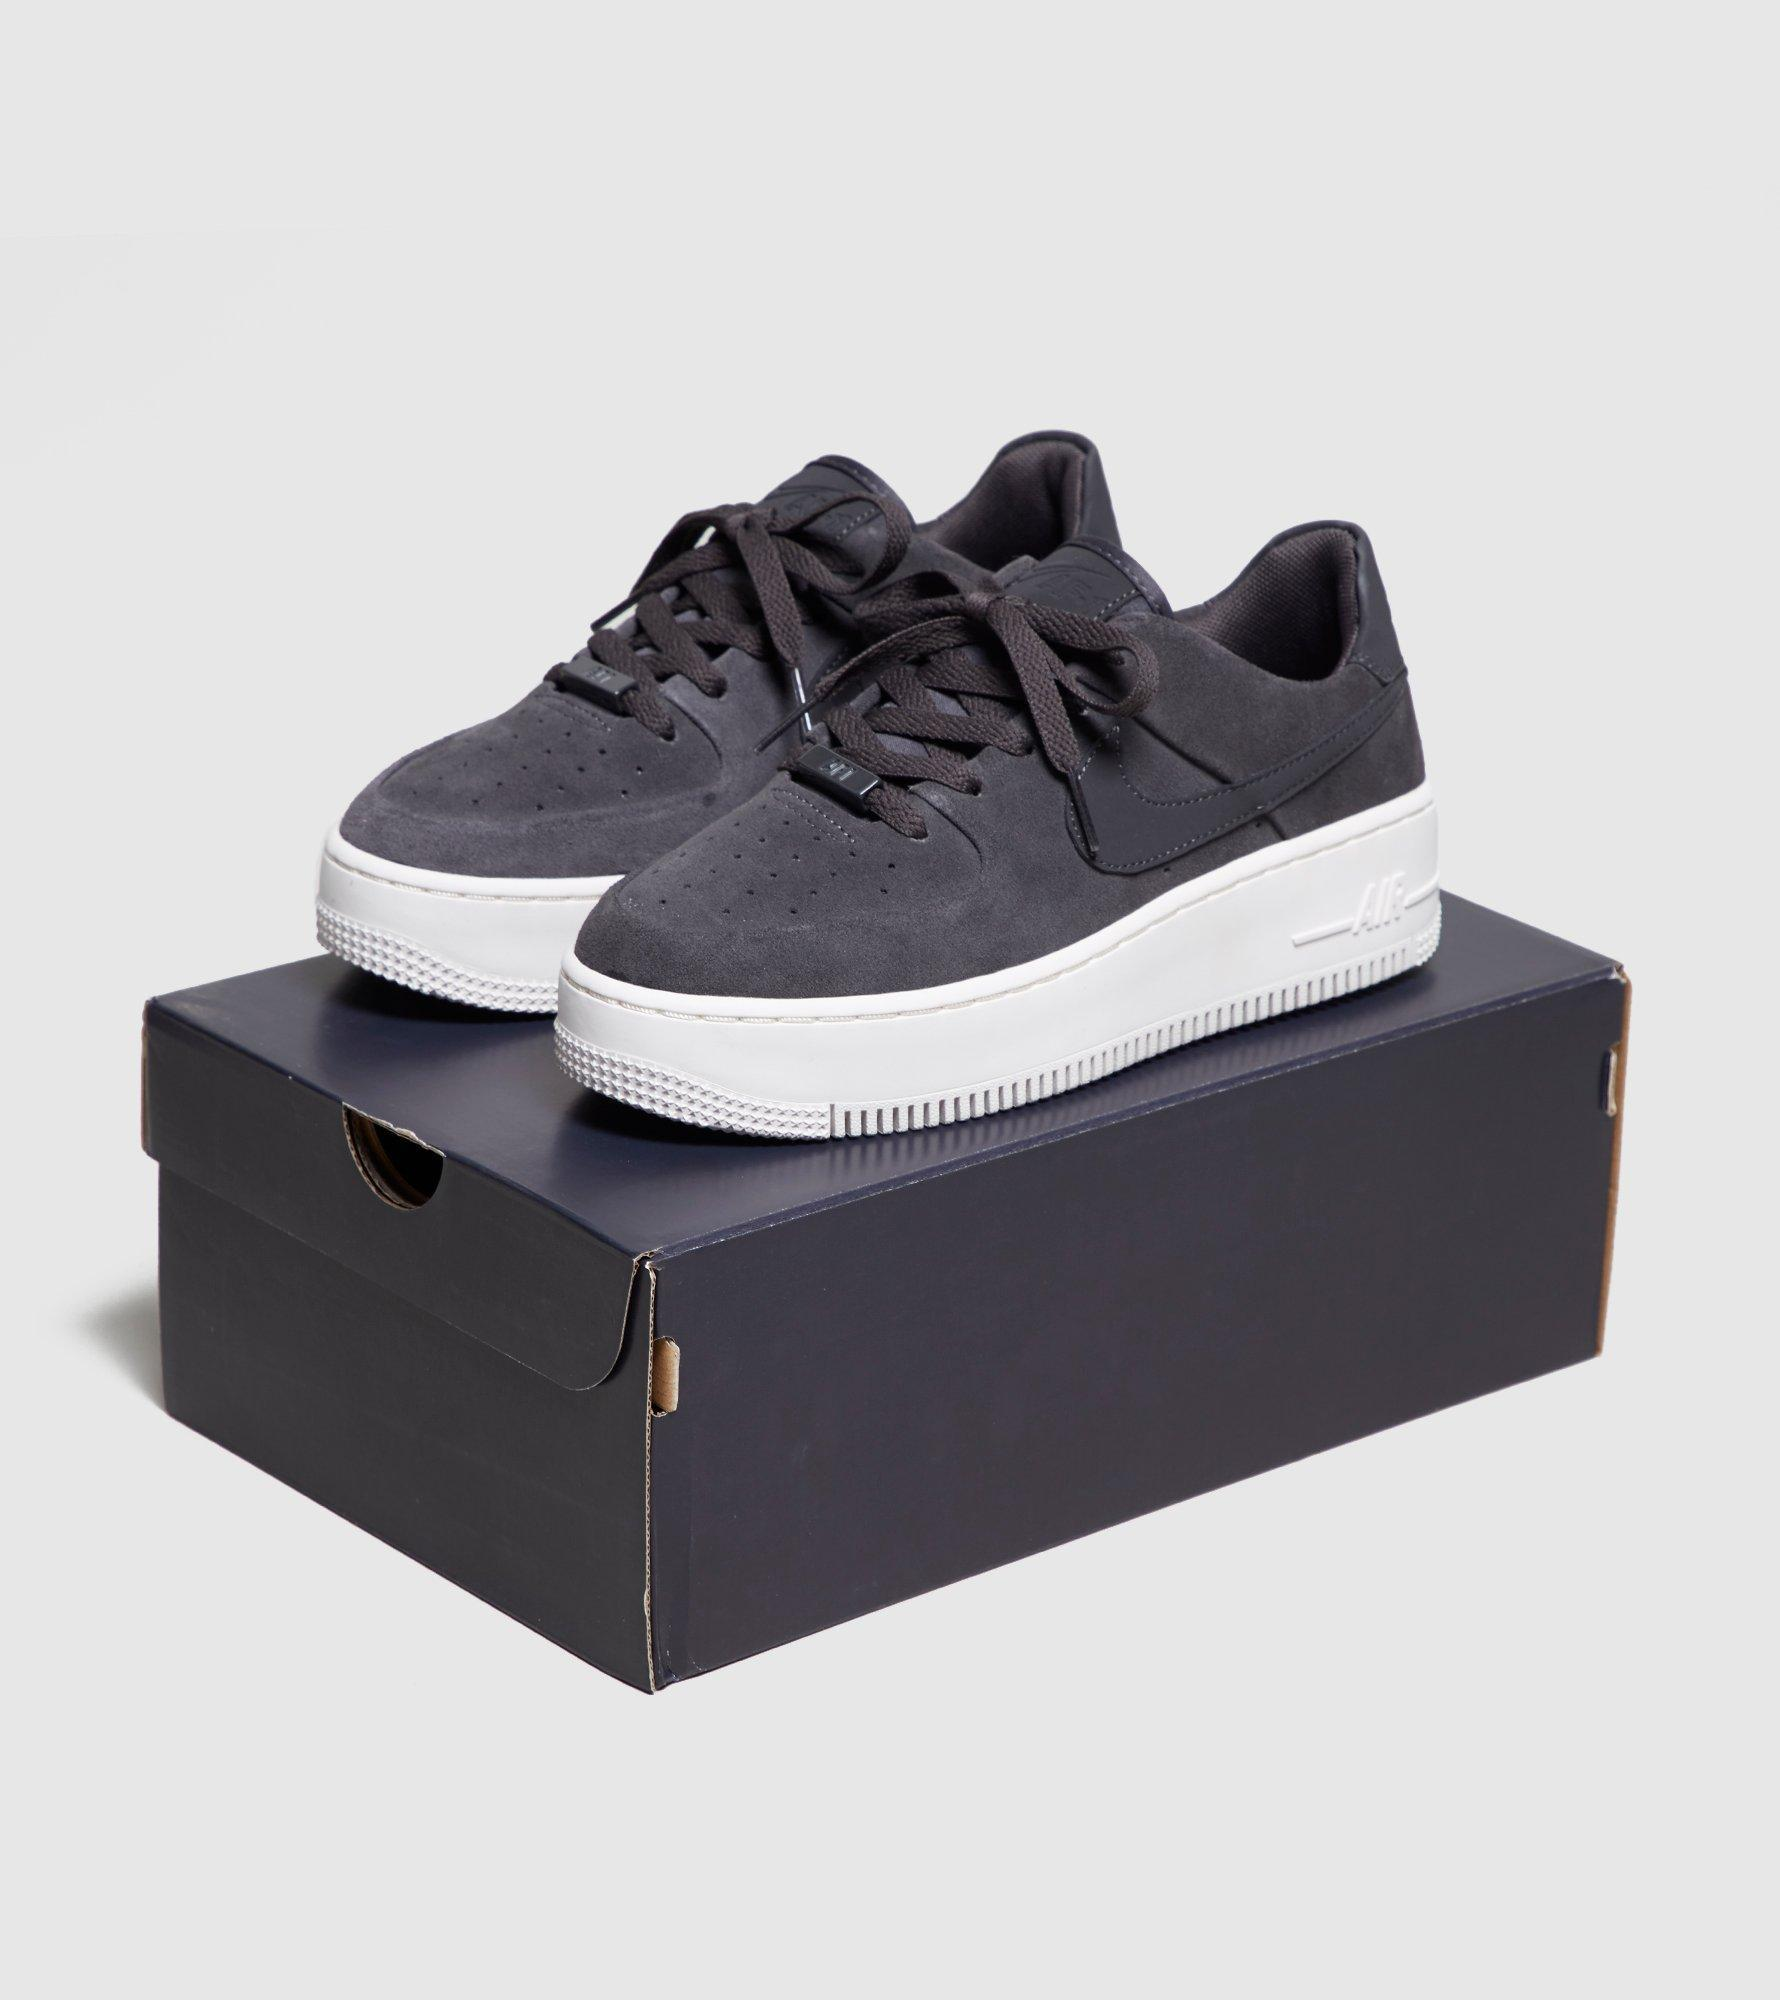 premium selection 9793a 8fe6d in 1 Sage Air Low Women s Lyst Force Gray Nike qVpLUSMGjz